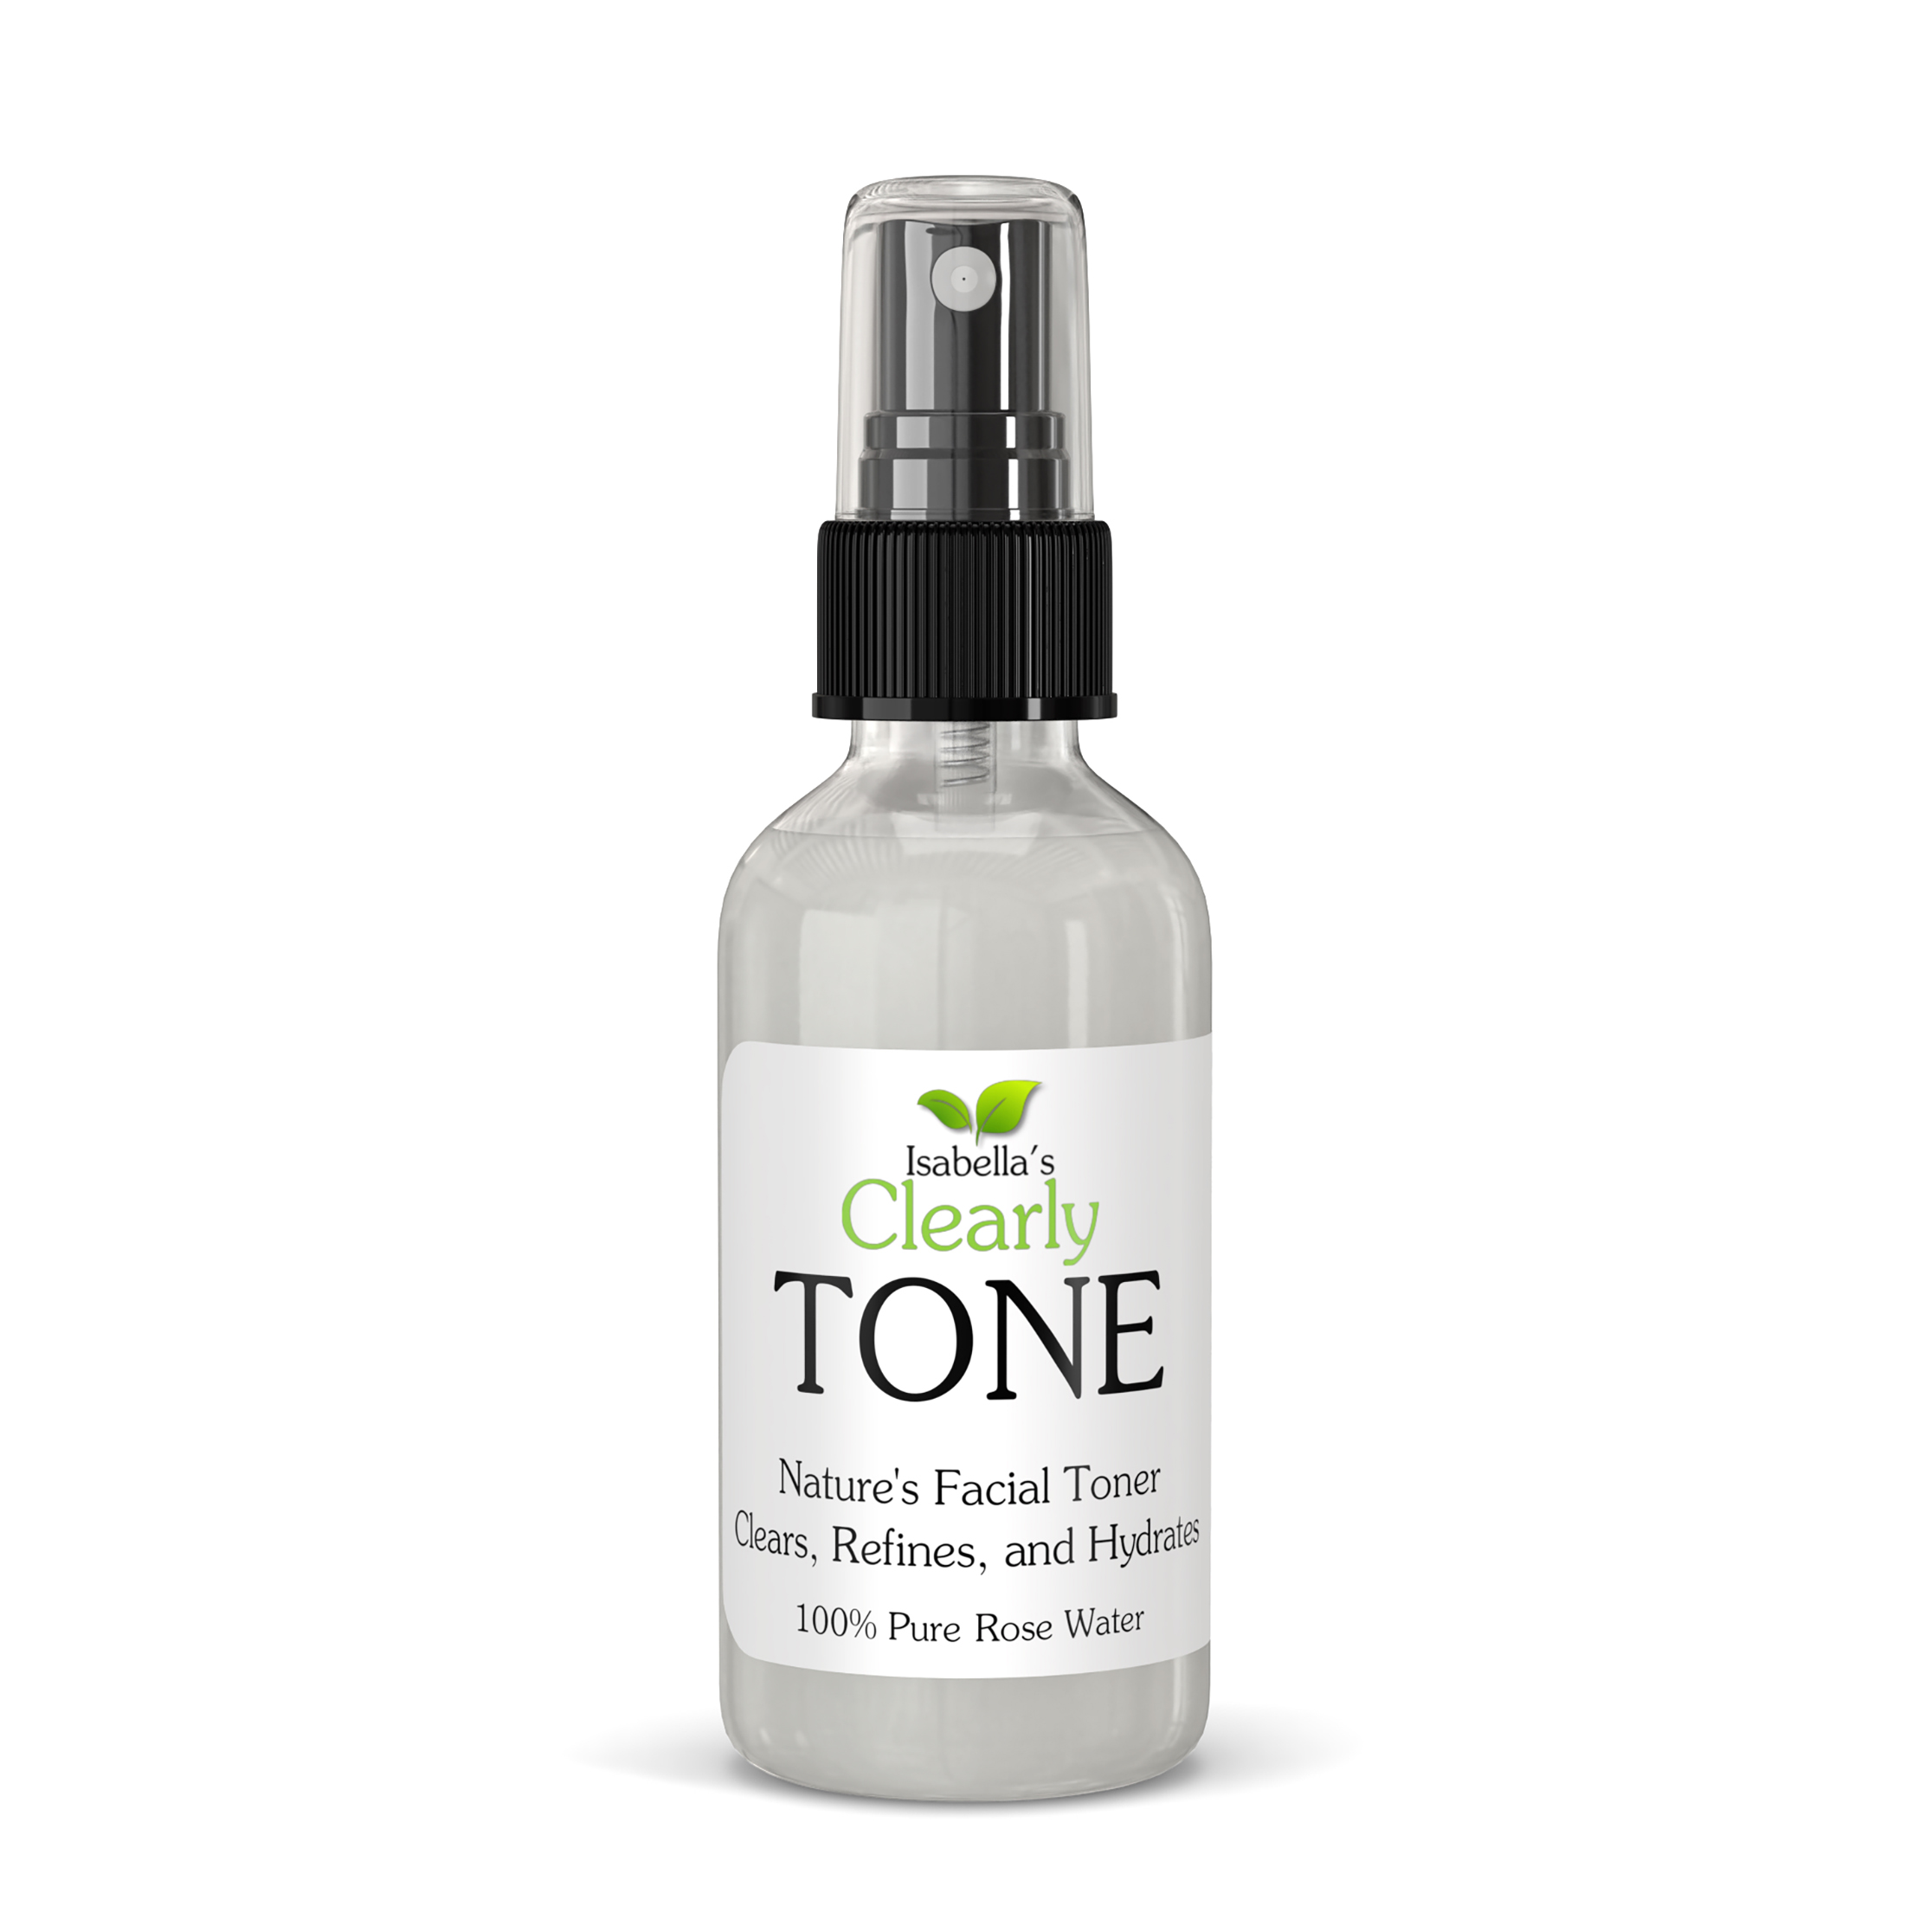 Clearly TONE, 100% Pure Rose Water Facial Toner